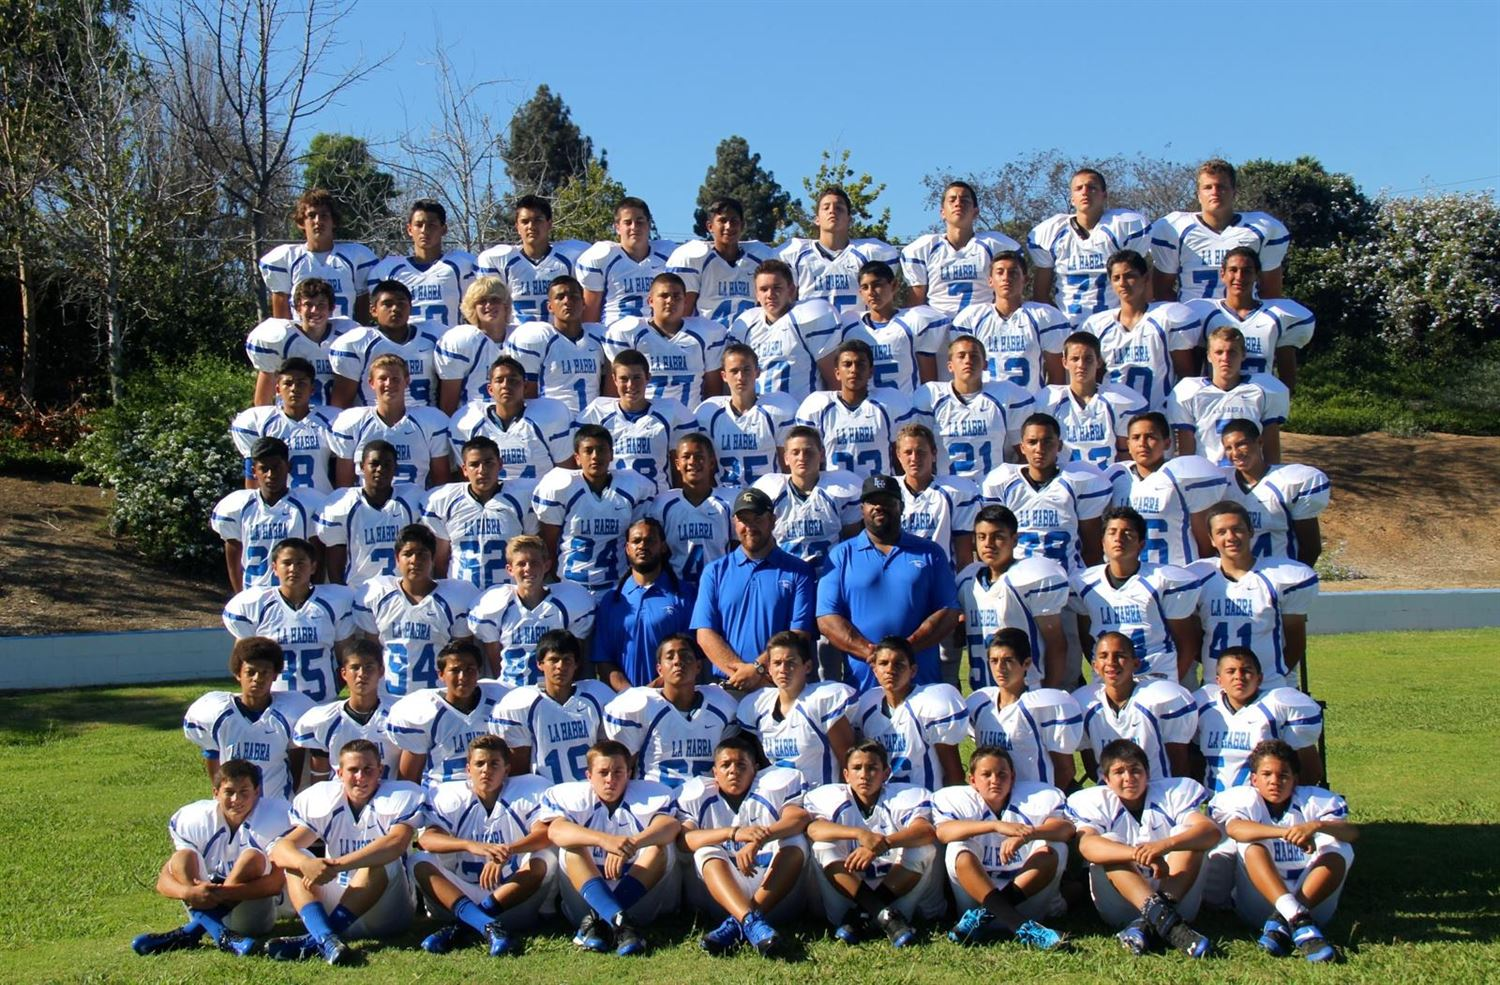 La Habra High School - Freshman Football